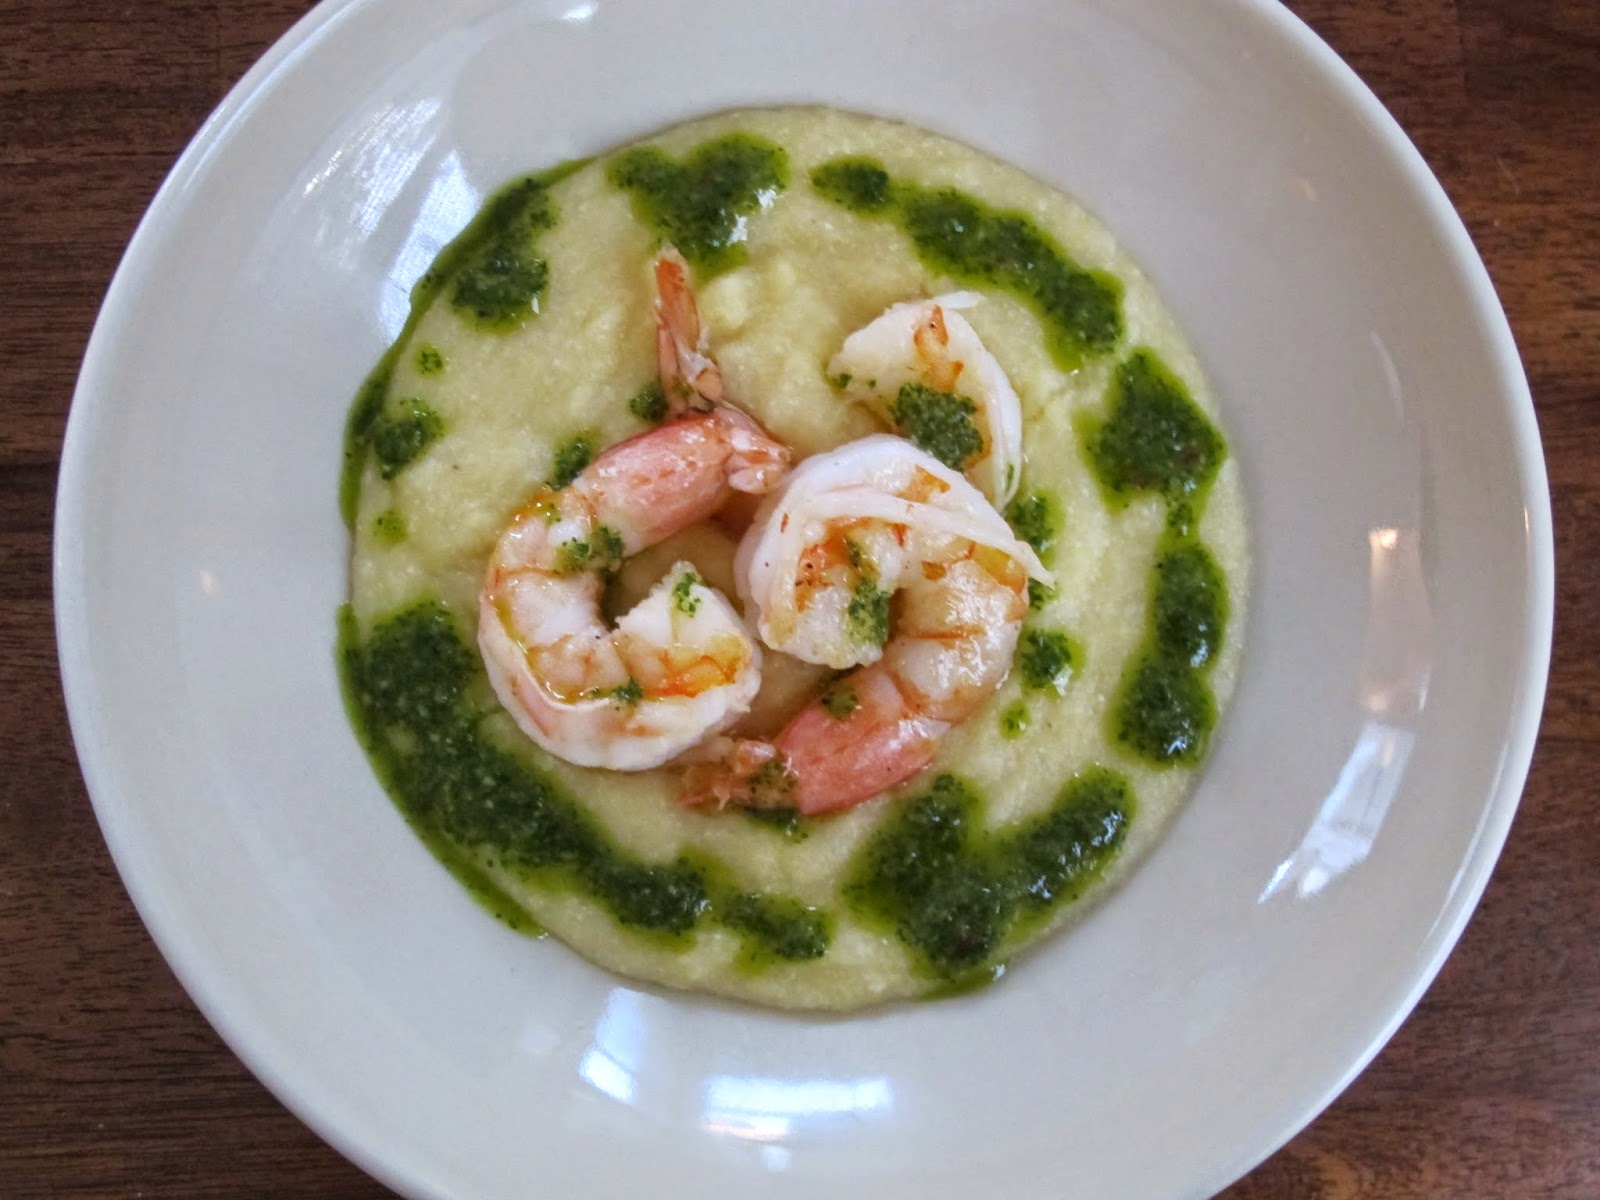 Shrimp with Three-Herb Chimichurri Sauce